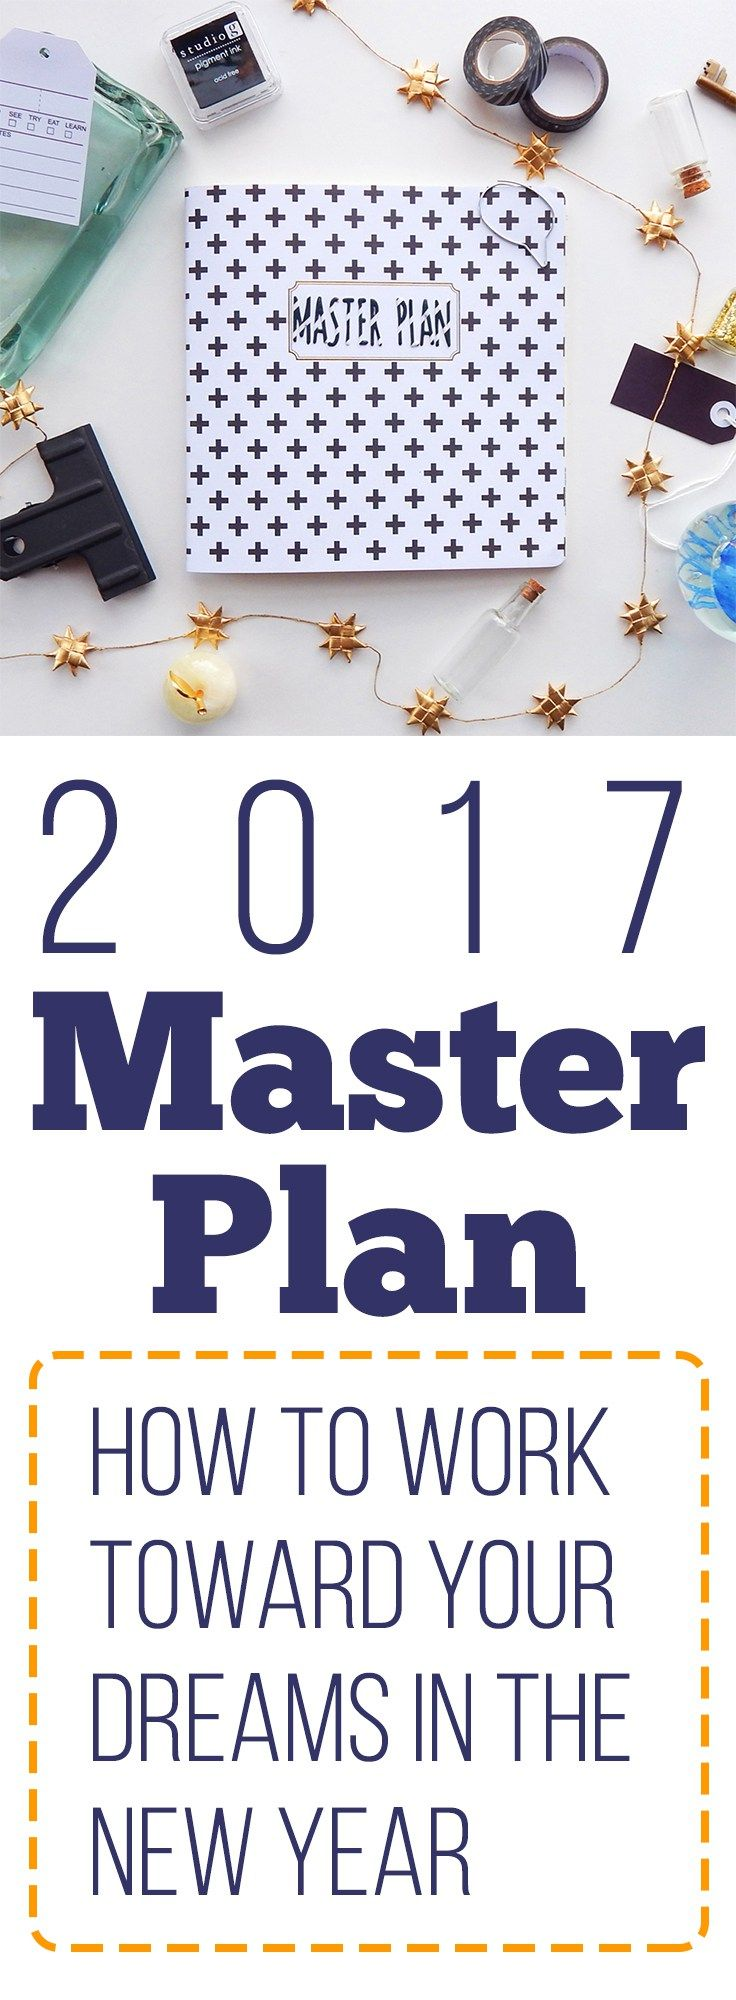 It's time to set your eyes to the future and see how you can tackle your goals with a 2017 master plan. This is your year to plan and take on big dreams!